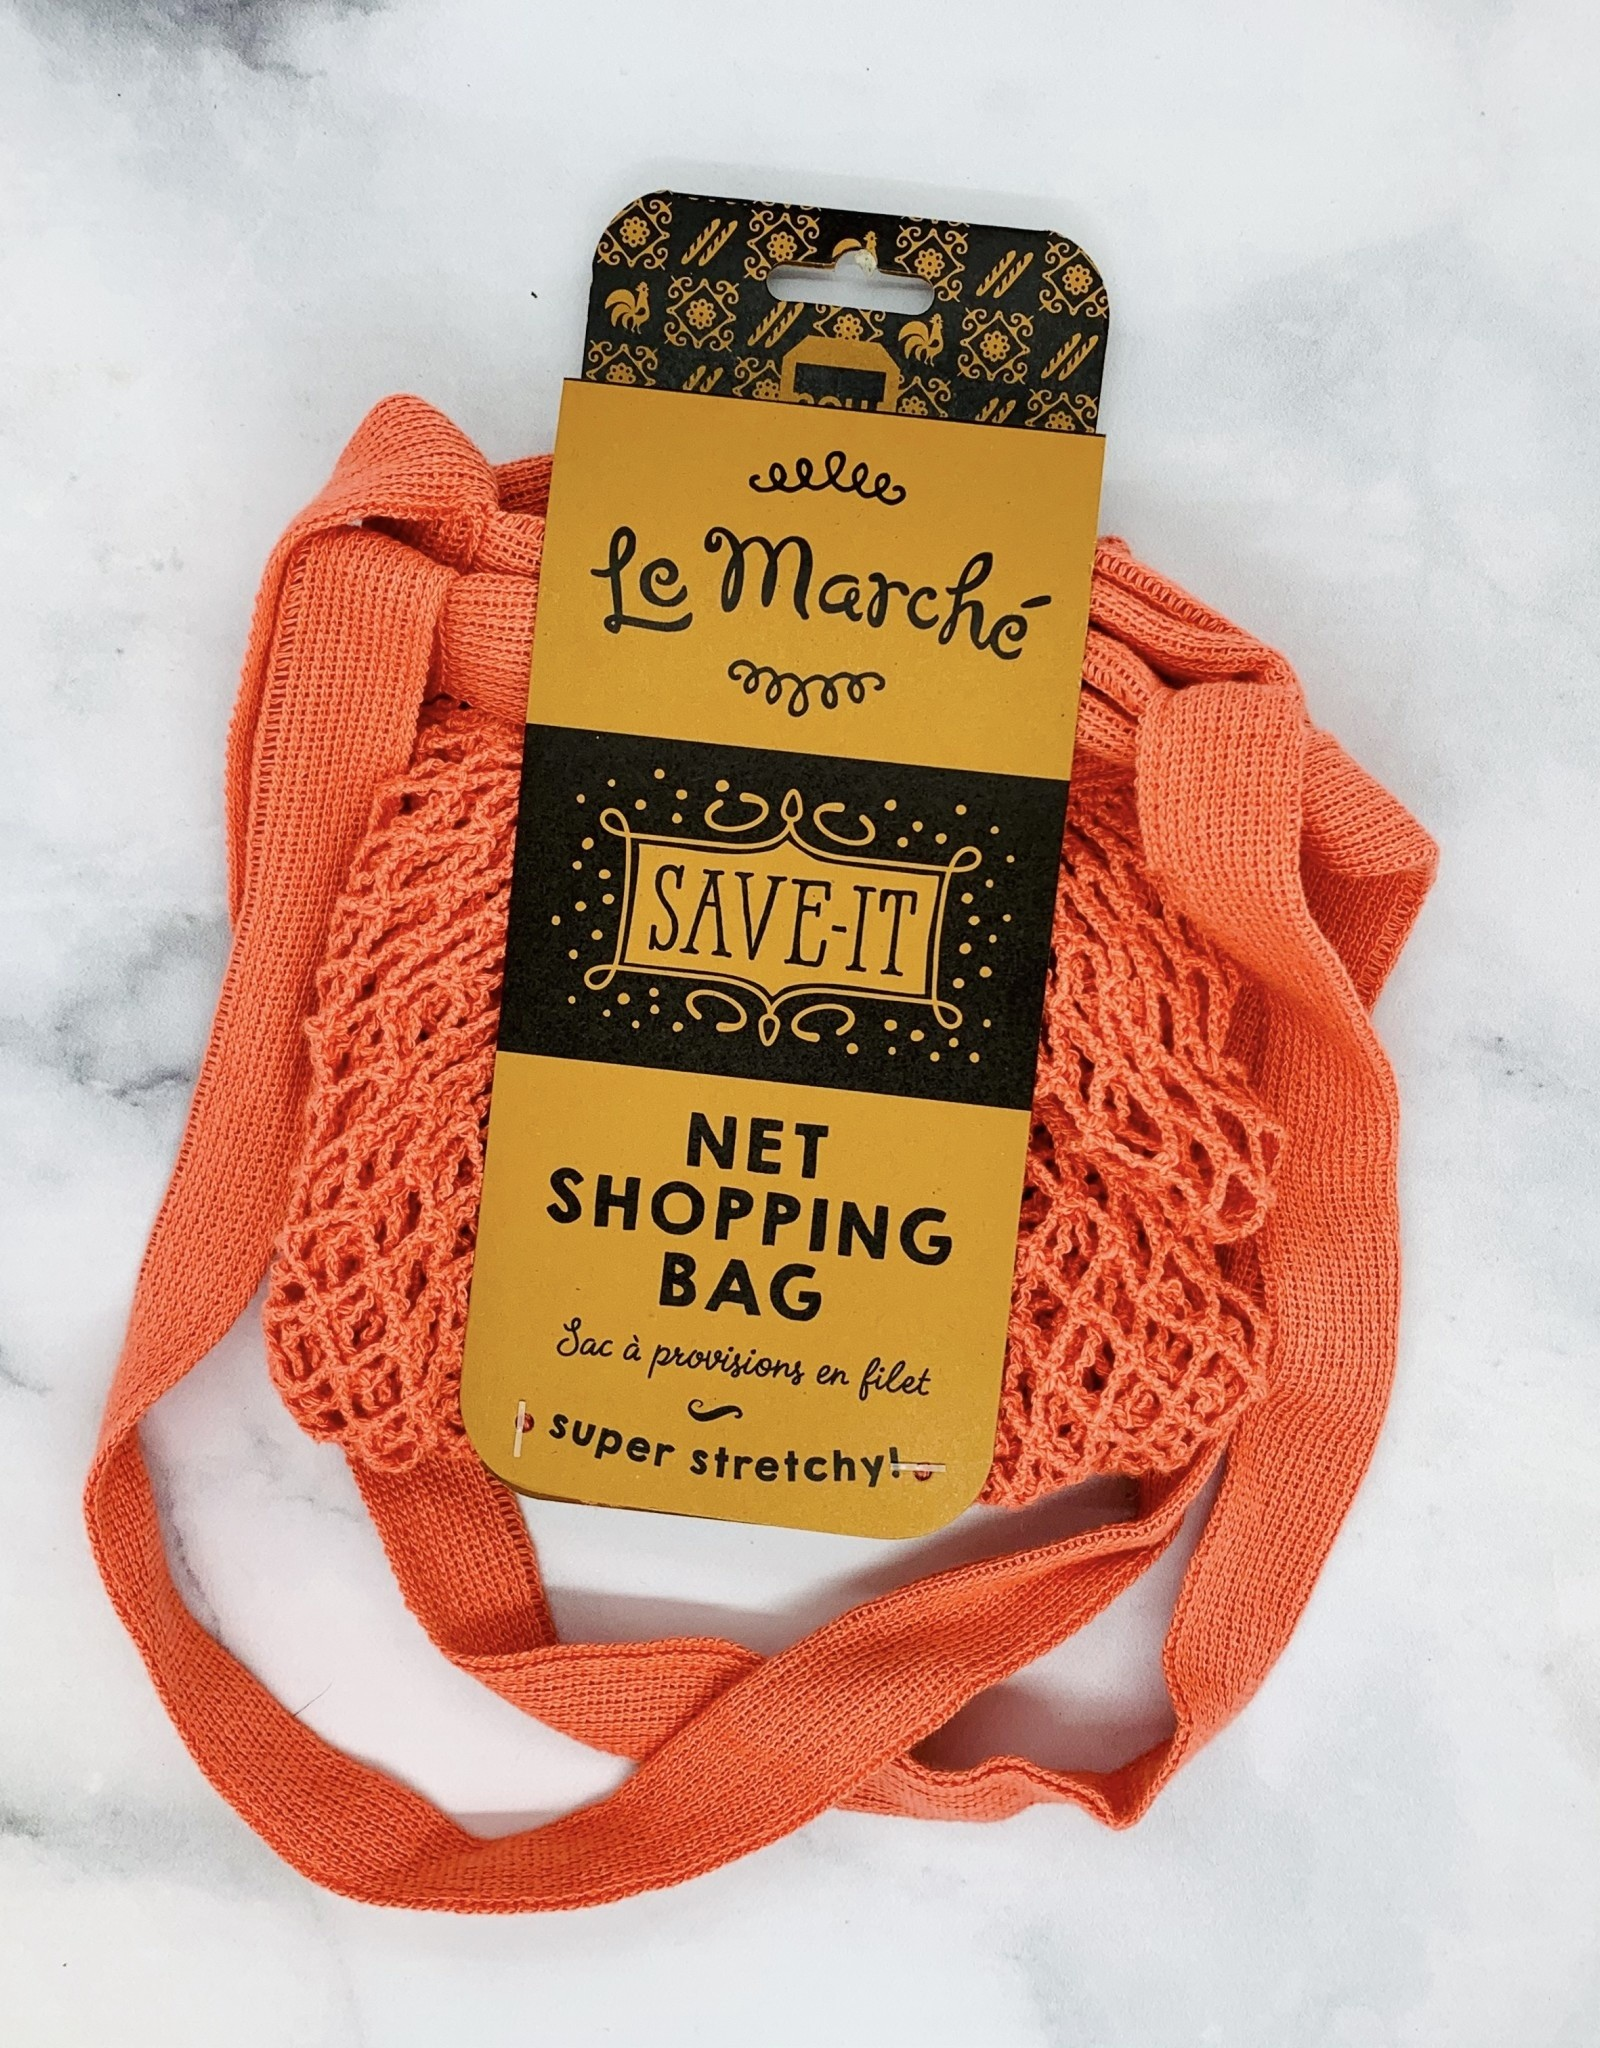 NOW Le Marche Shopping Bags